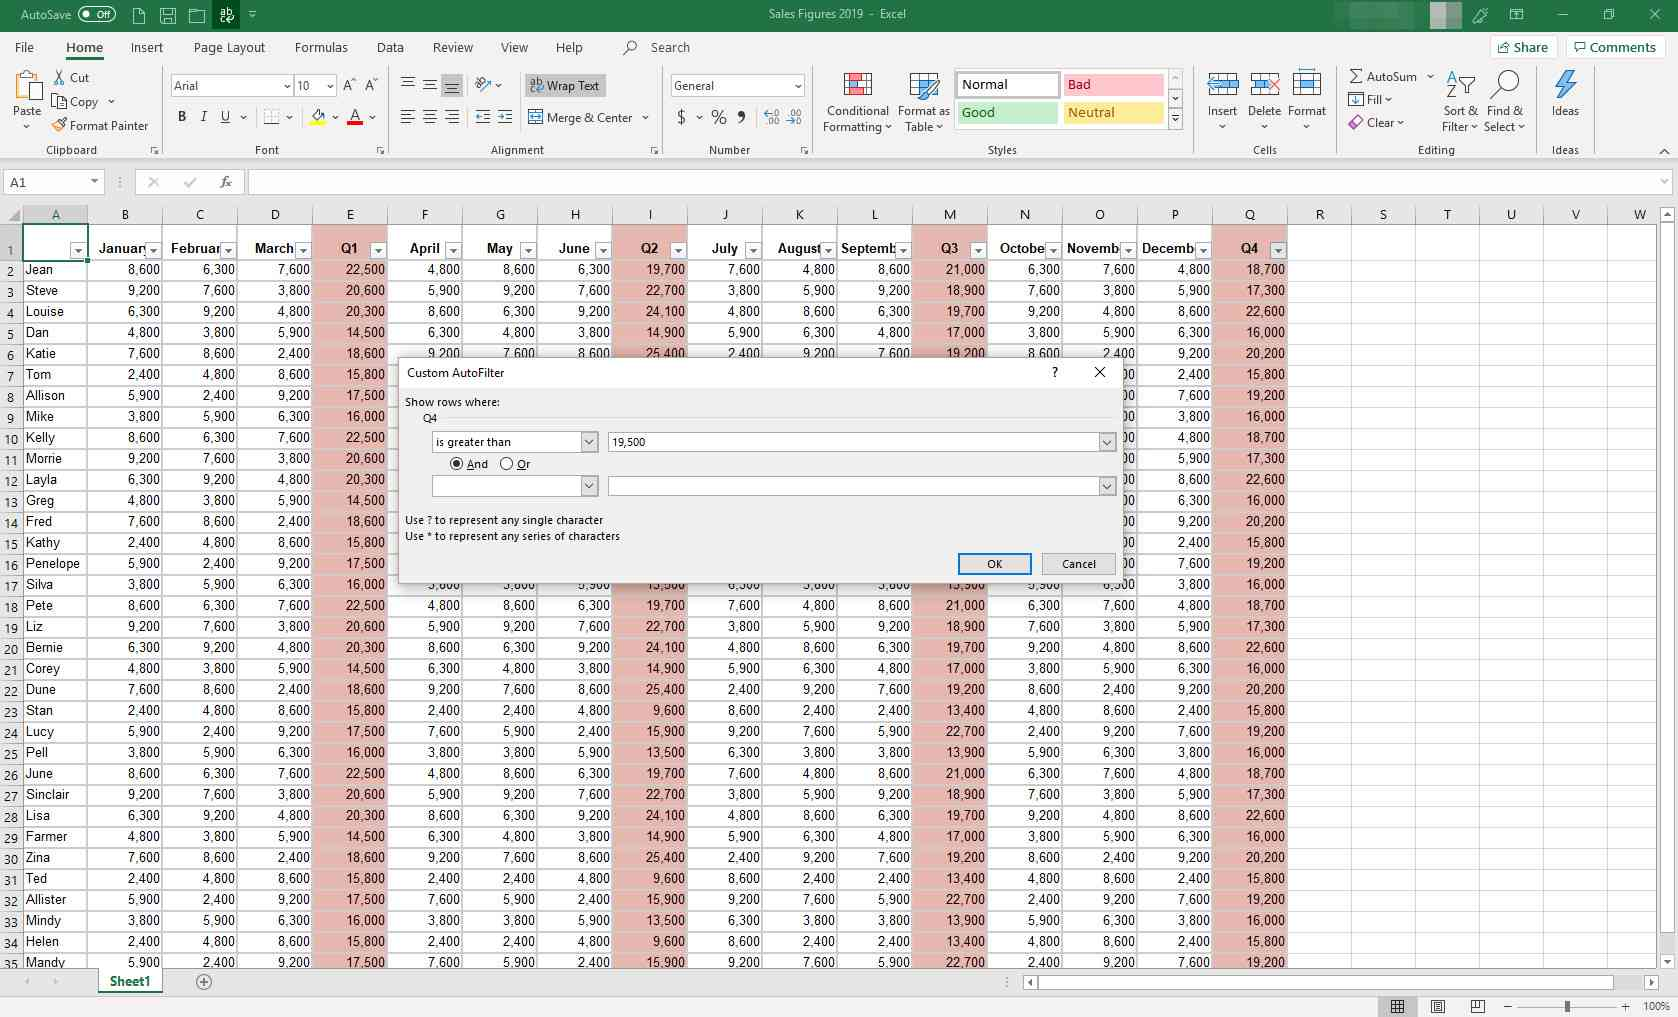 MS Excel with Custom AutoFilter dialog box displayed